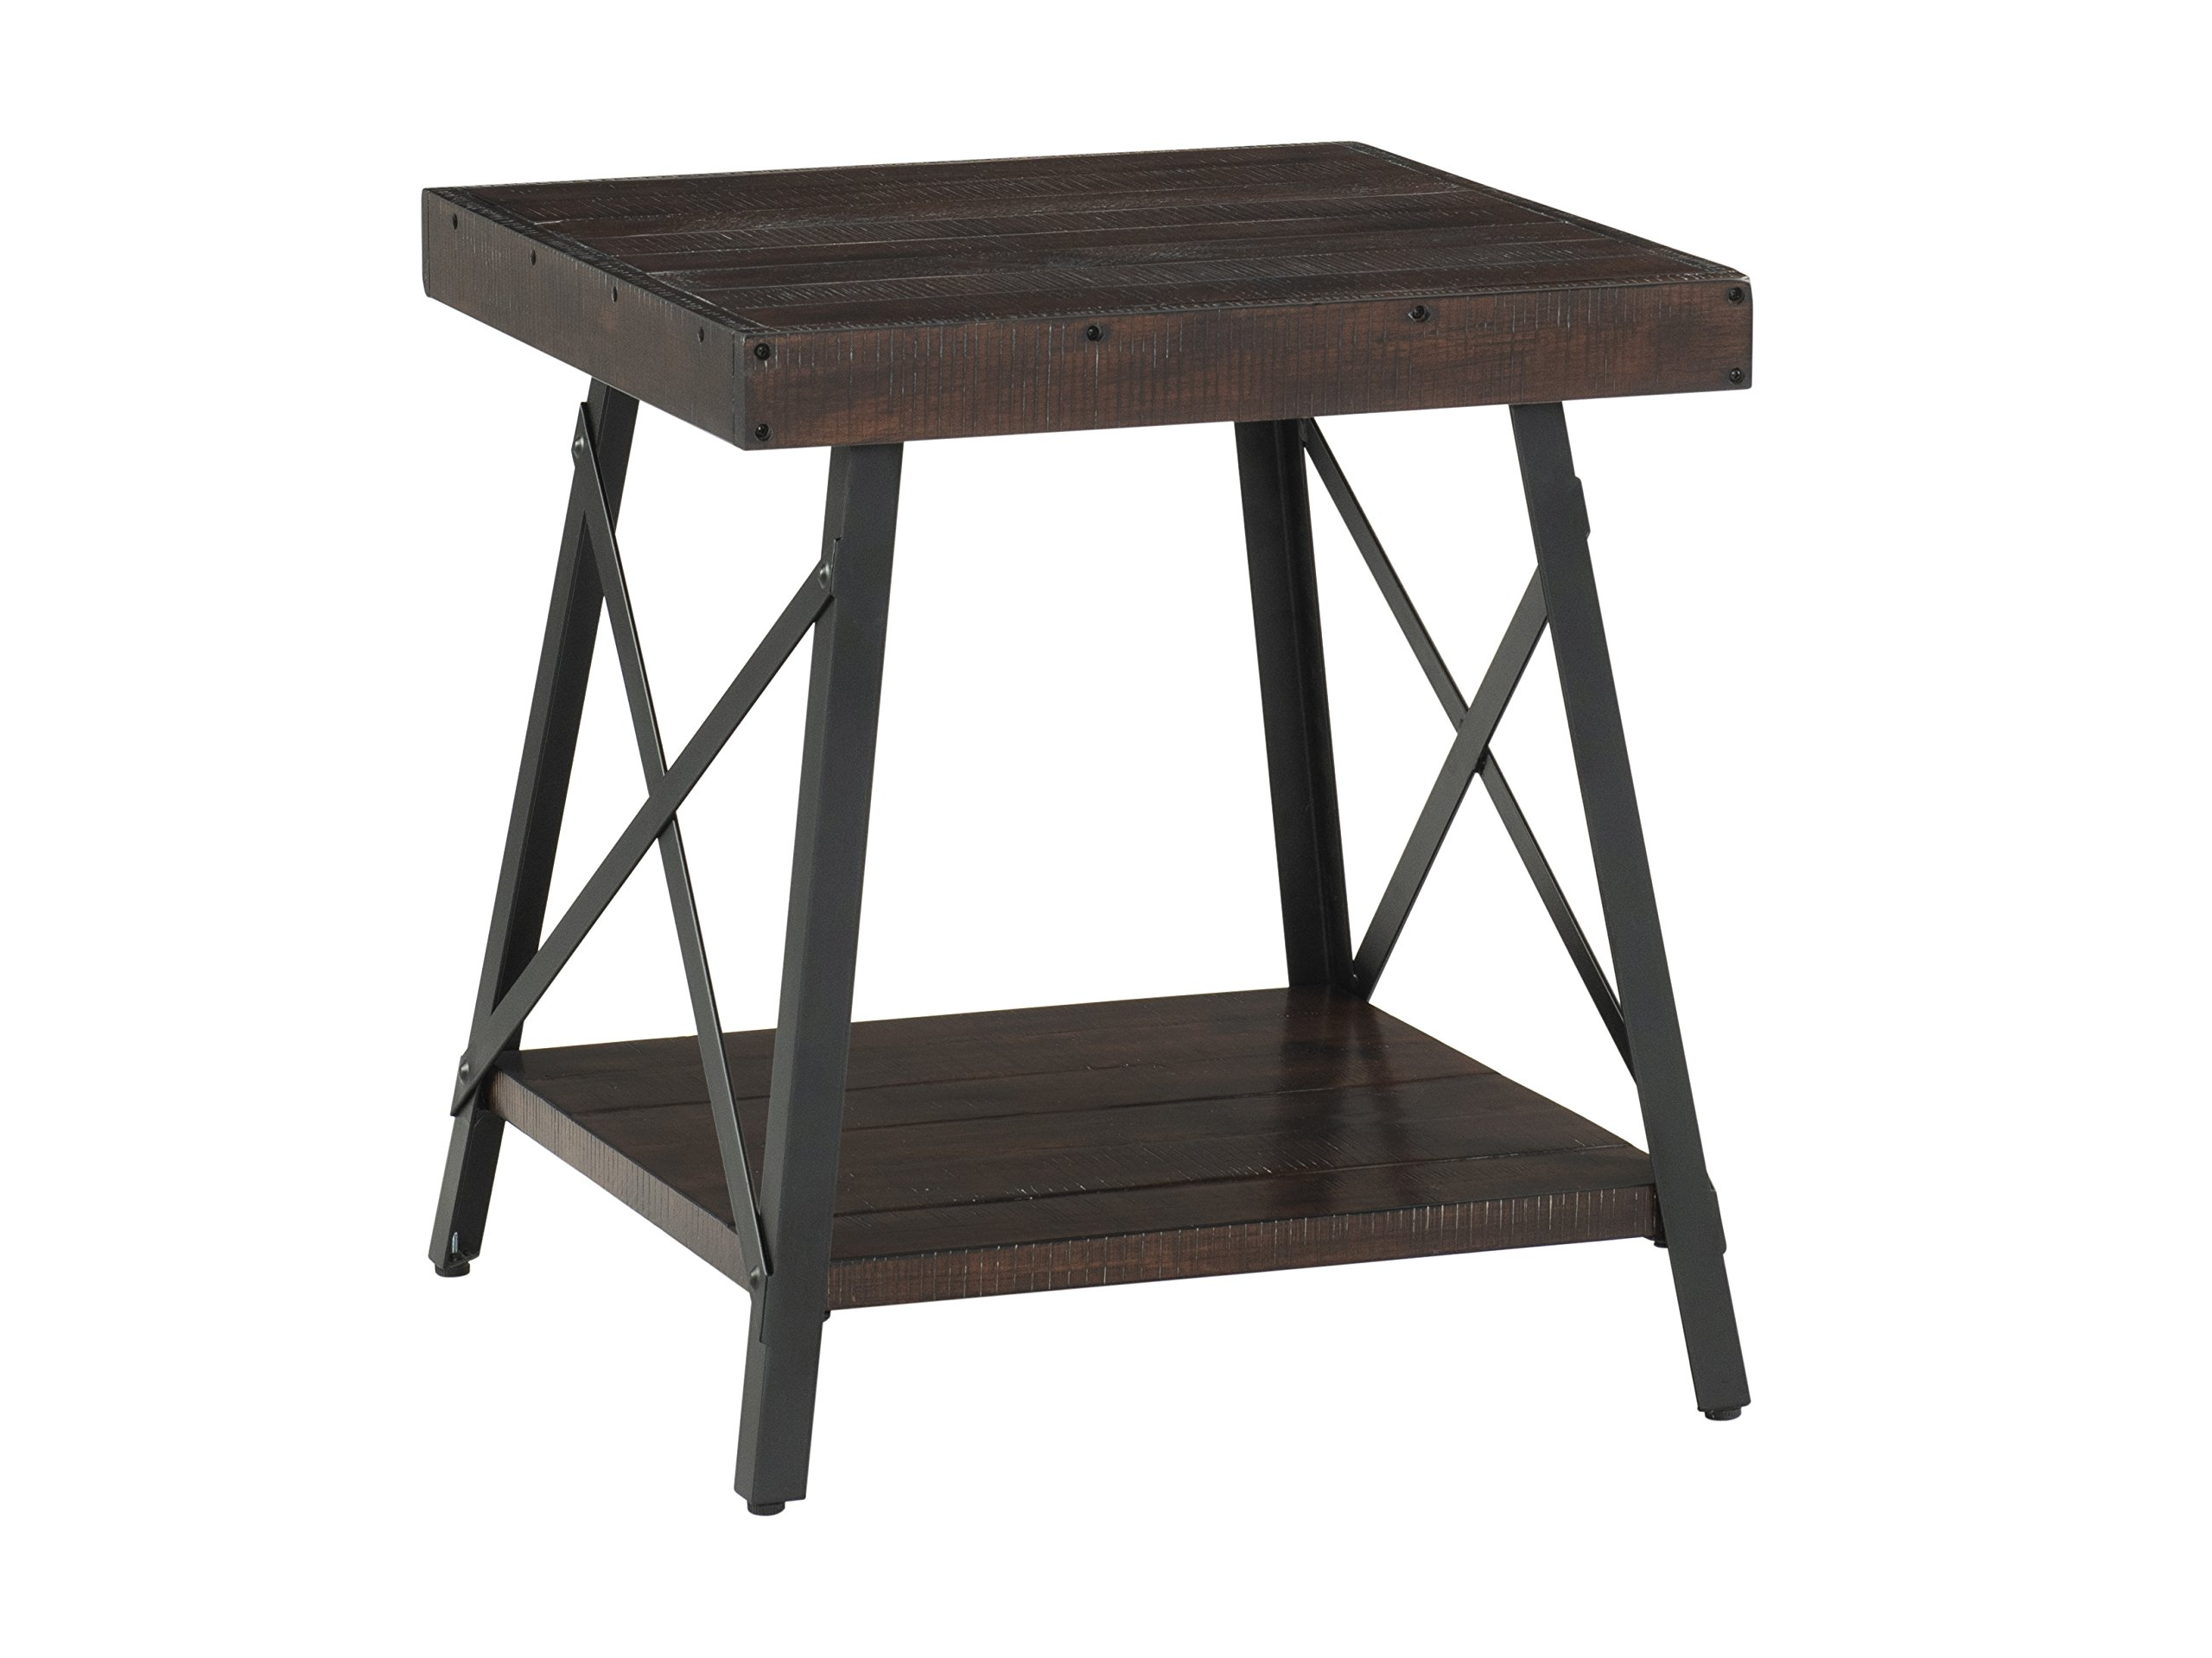 "Martin Svensson Home 890435 Xavier End Table, Sumatra - Finish: Sumatra - blend of a deep rich Coffee Finish with a slight amount of white pumice hang up Crafted from solid wood - New Zealand pine with rough hewn saw marks Exposed rivets across the Top and Black Steel metal ""x"" cross on the end caps give it a distinct industrial and rustic look - living-room-furniture, living-room, end-tables - 81a8f9j0r7L -"